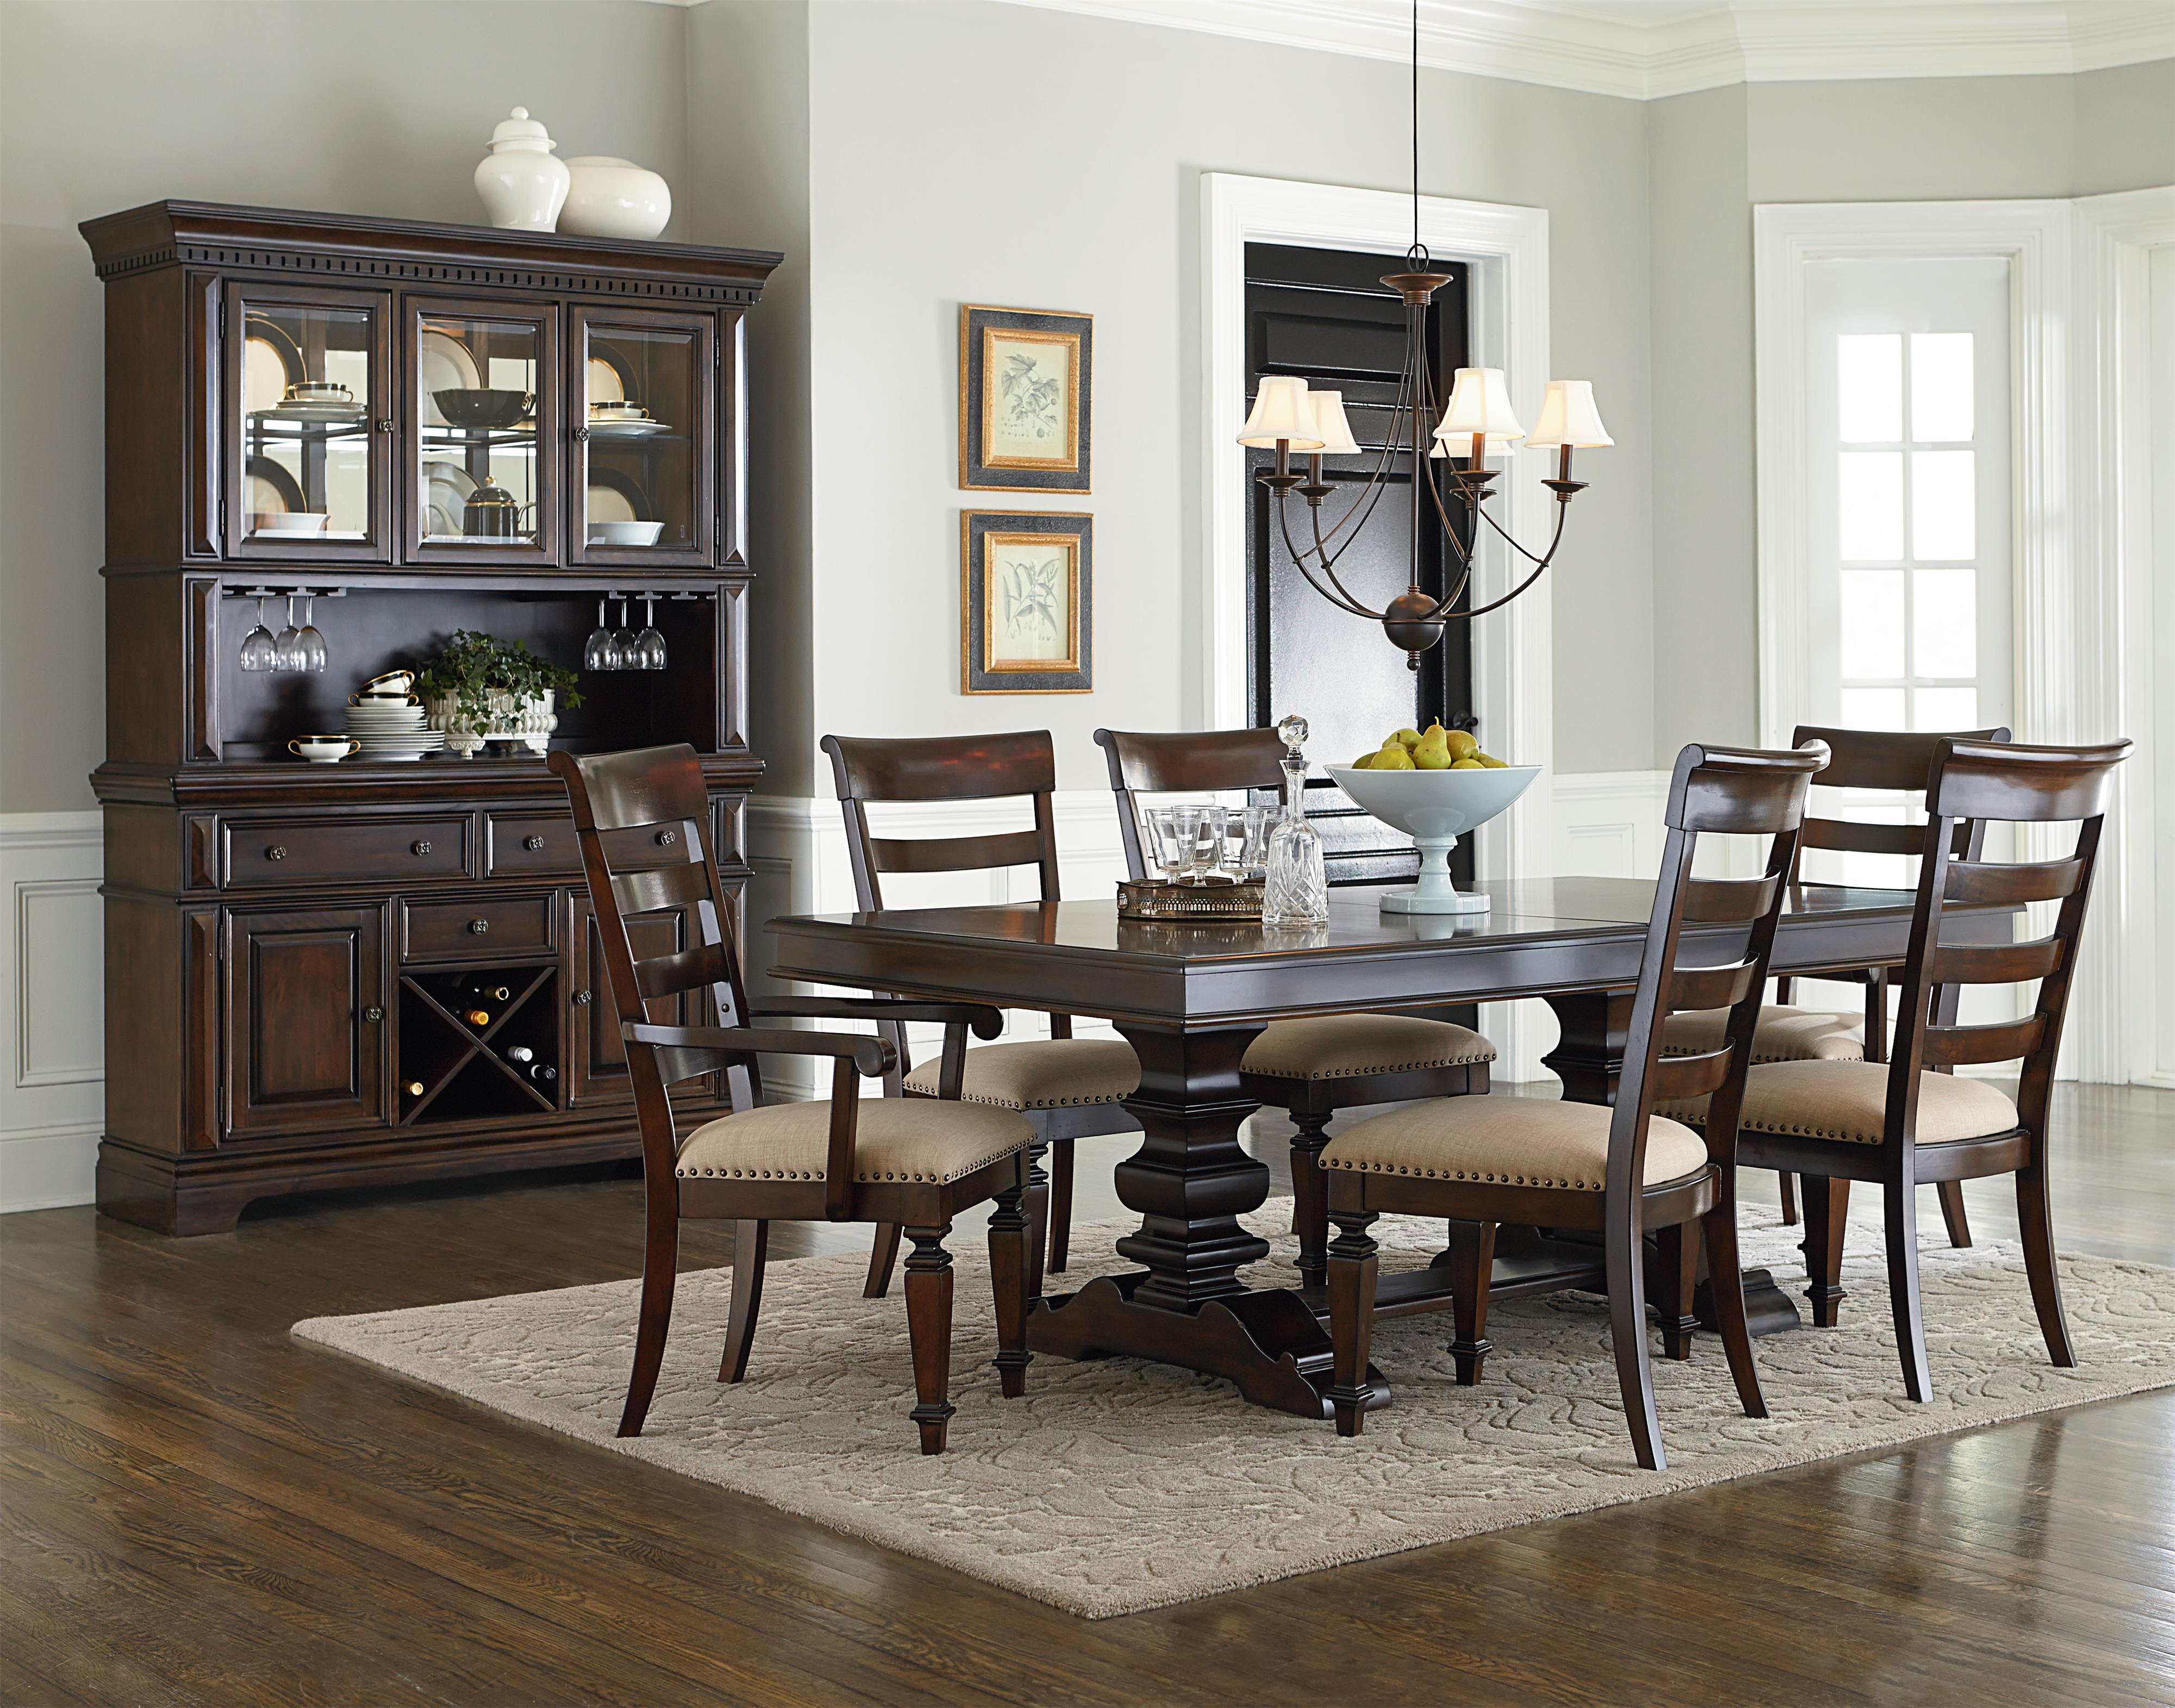 Standard Furniture Charleston Formal Dining Room Group - Item Number: 1672 Formal Dining Room Group 1